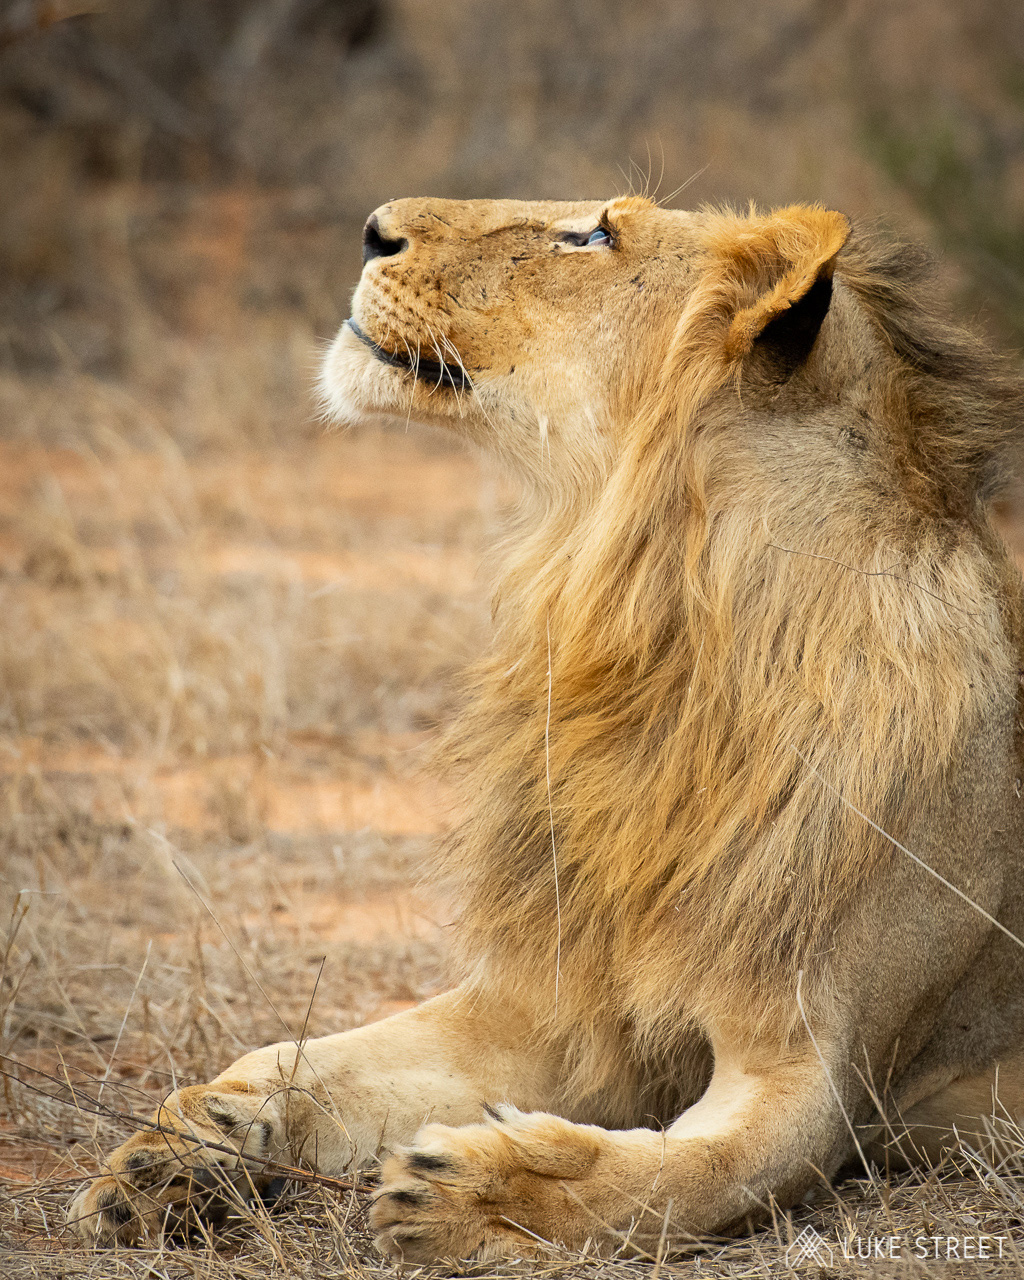 Tanda Tula - Lion looking up in the Greater Kruger, South Africa